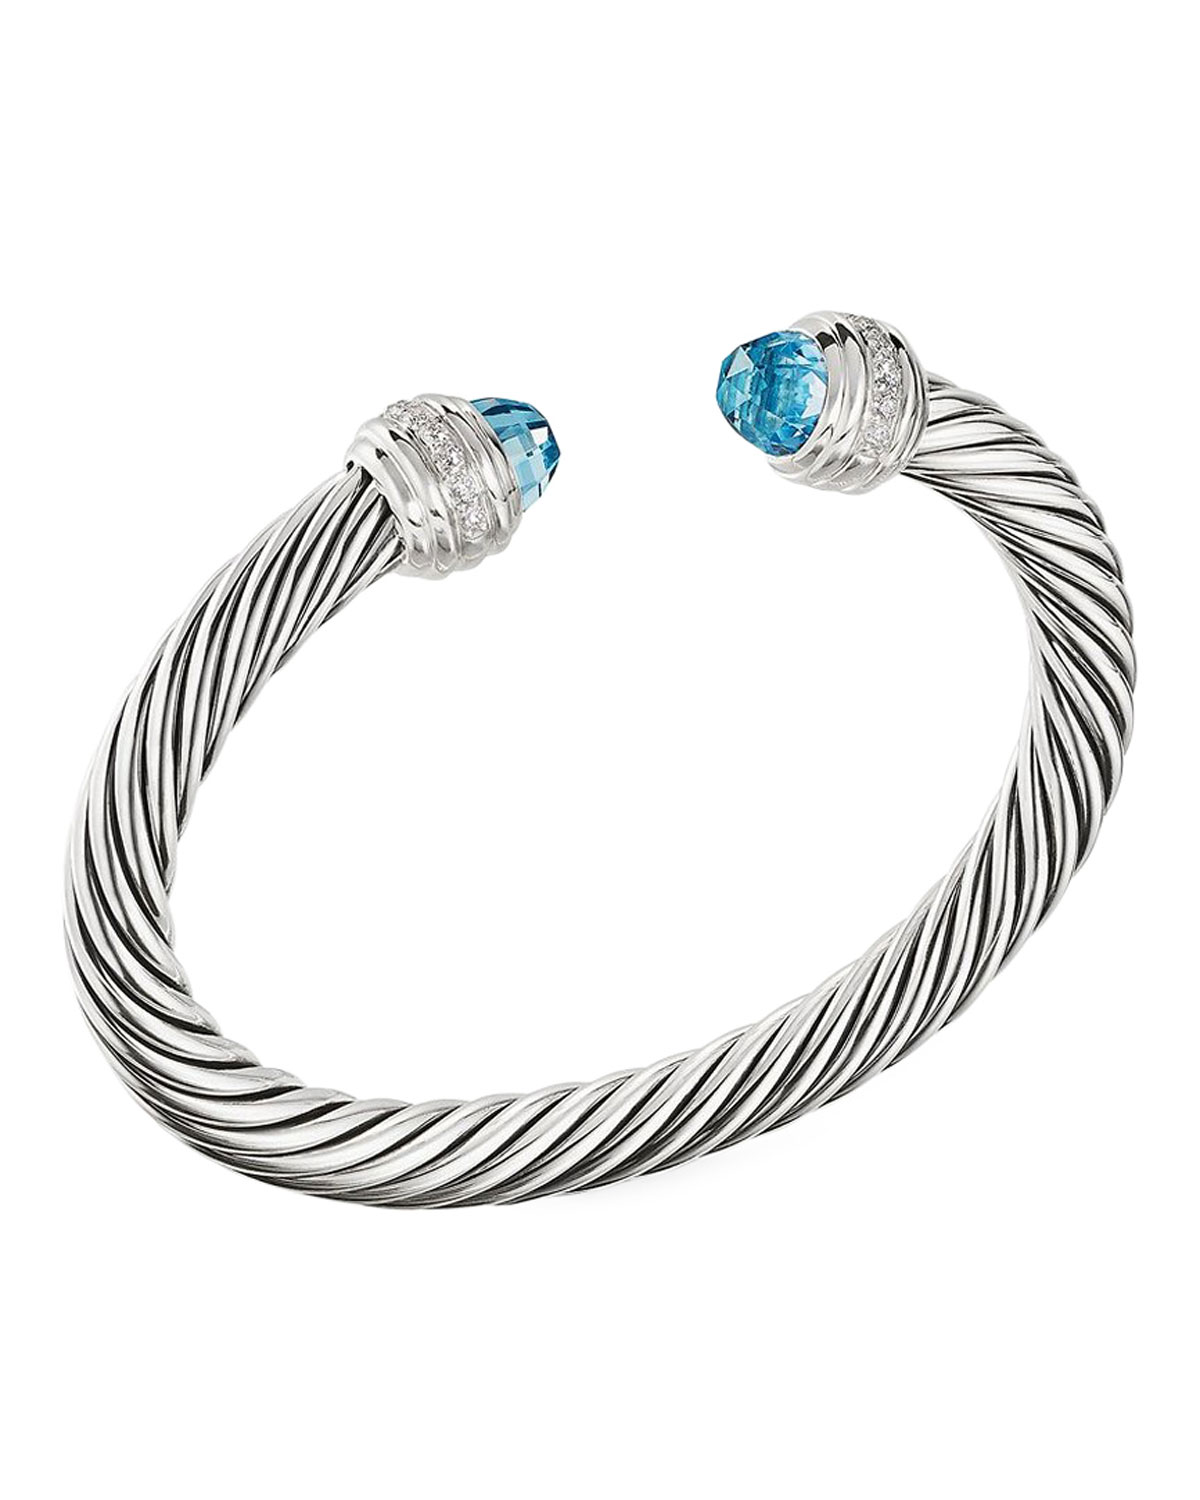 David Yurman 7mm Cable Bracelet with Diamonds & Topaz